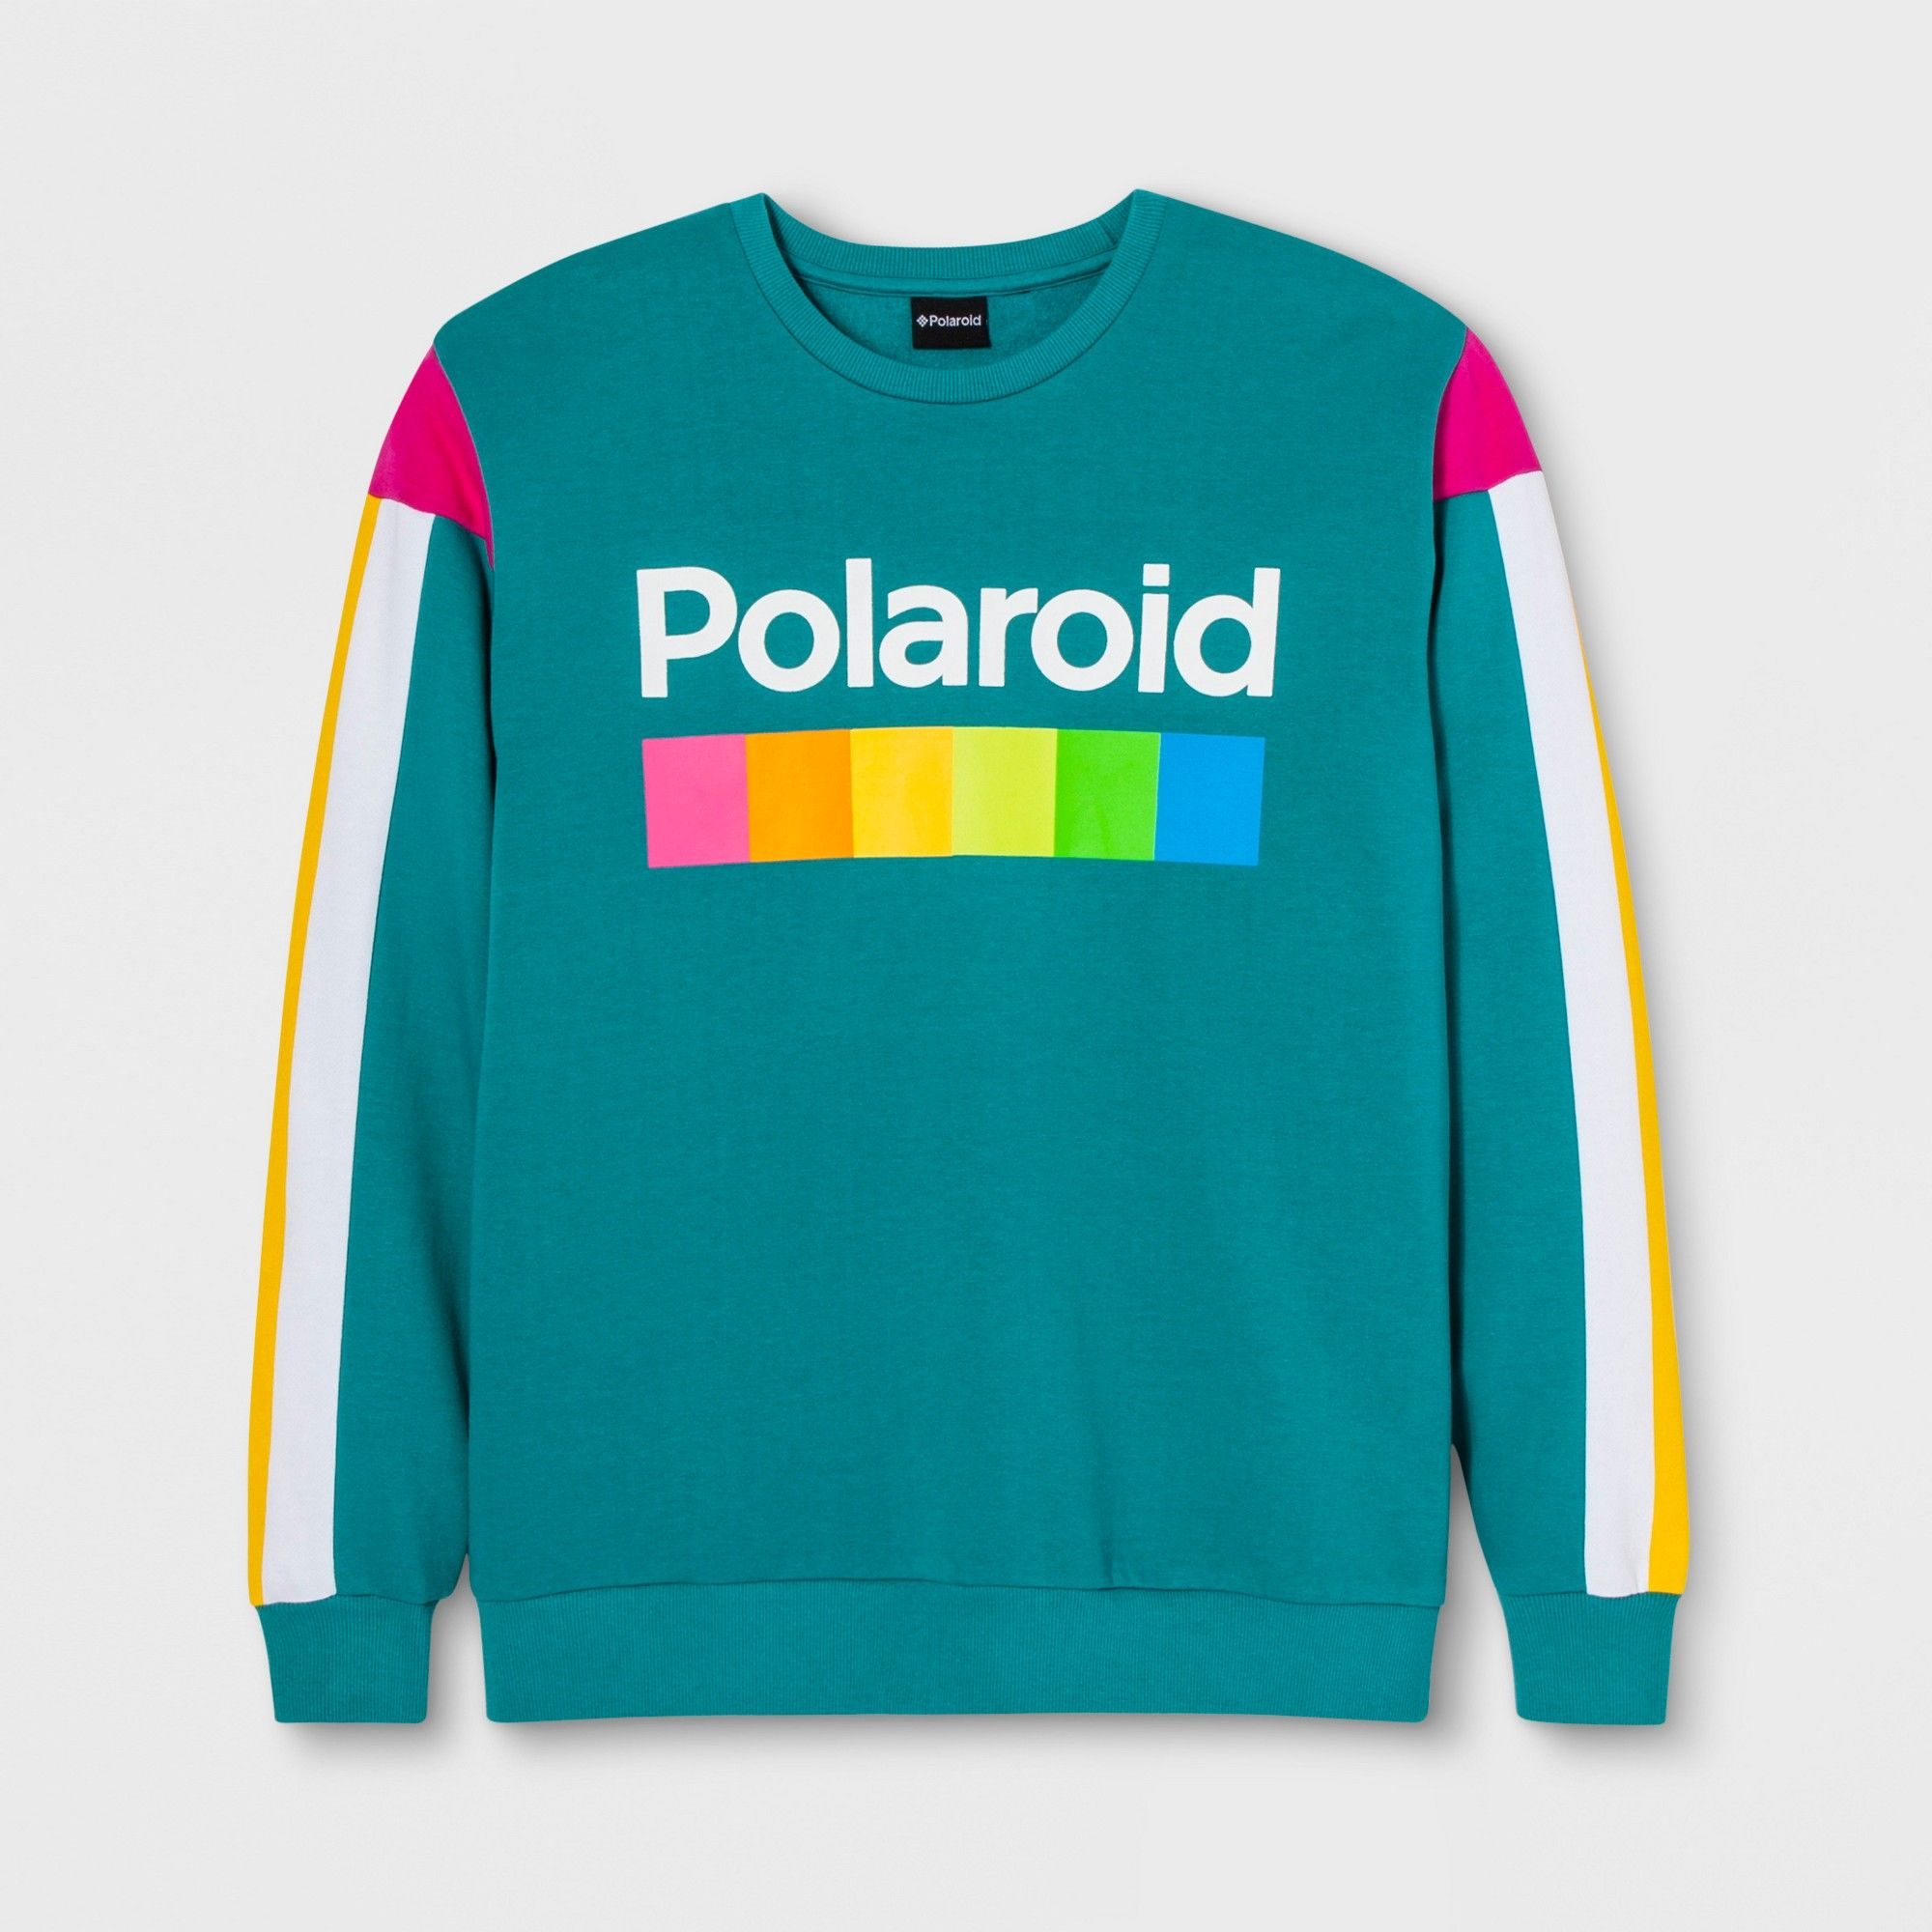 516f7bdd2d2b2 Men's Long Sleeve Polaroid Fleece Crew Pullover Sweatshirt - Teal XL ...